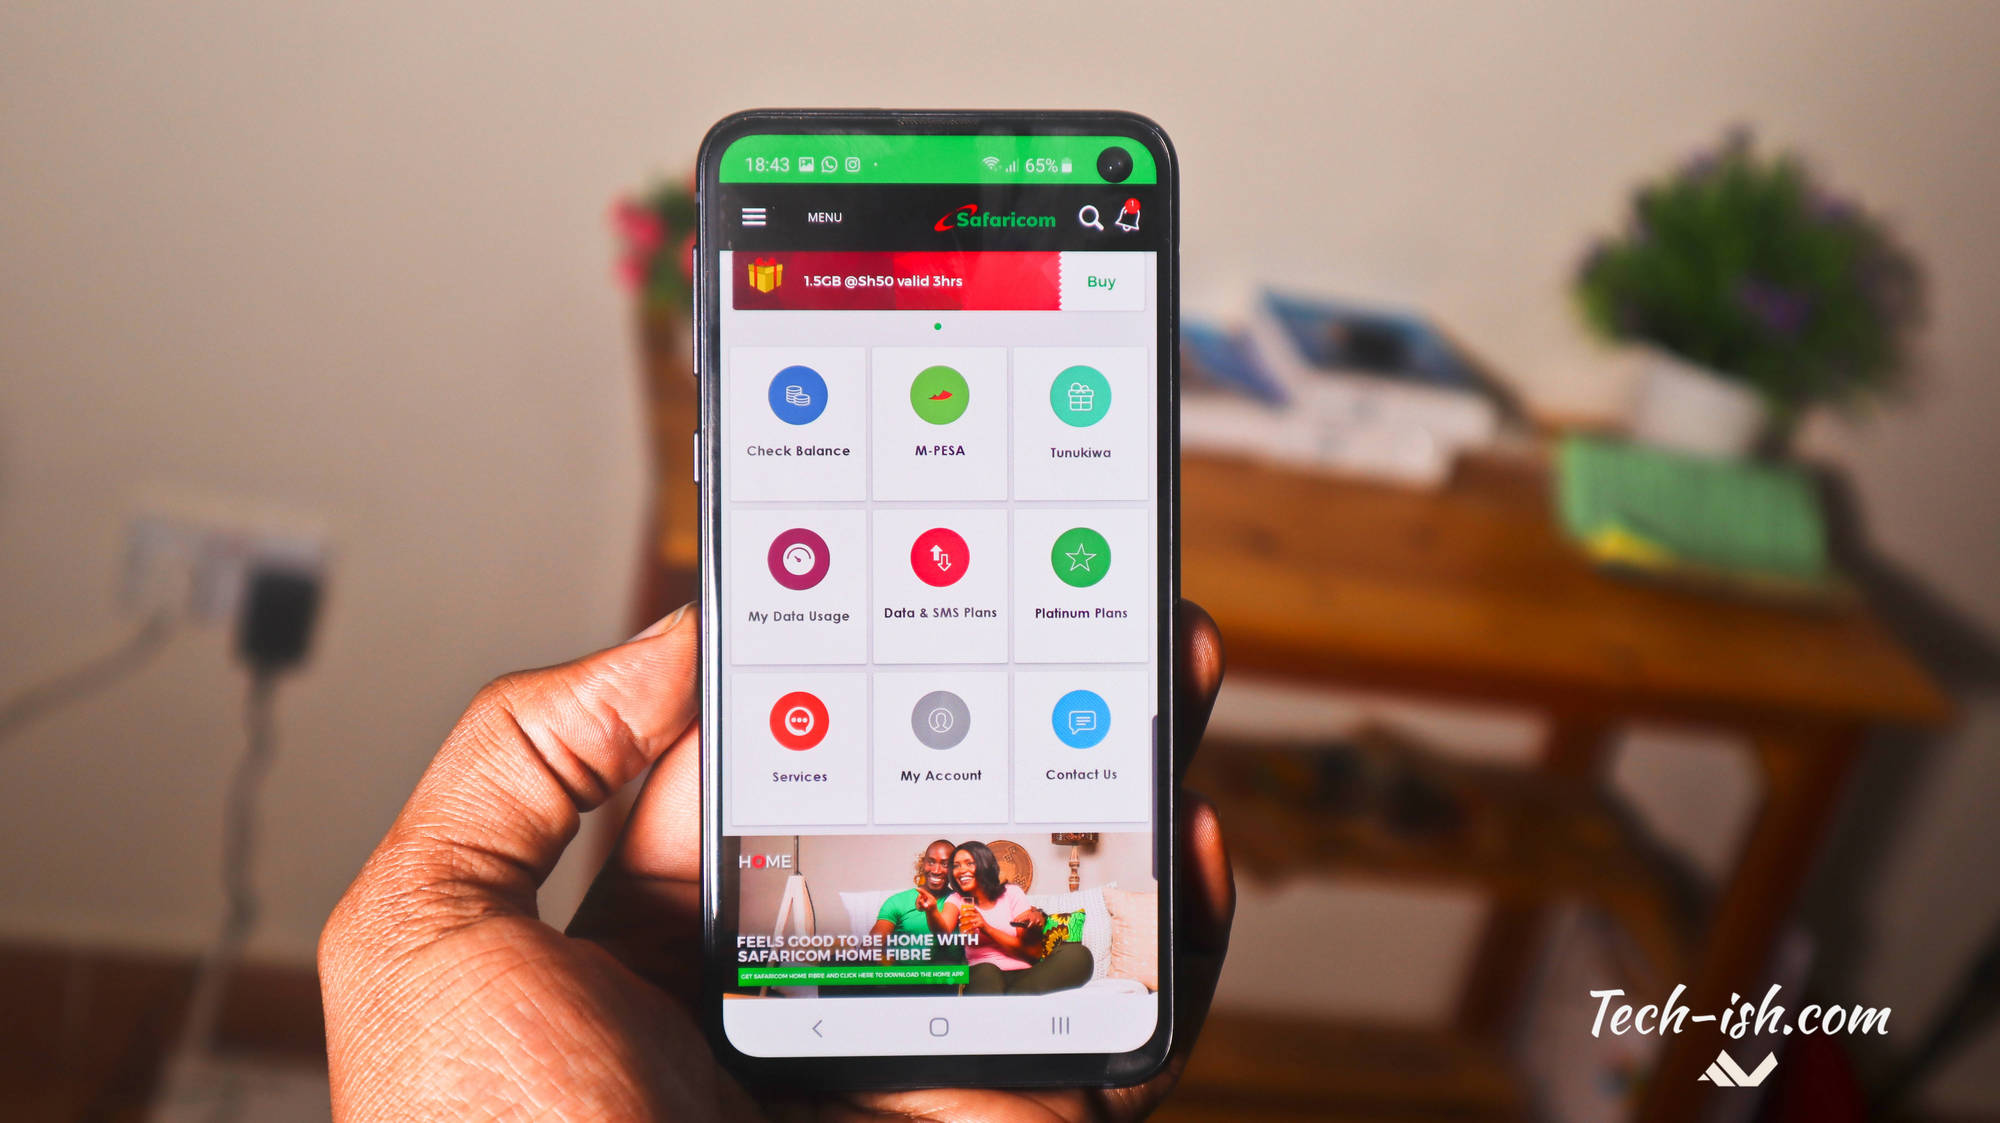 mySafaricom Update brings 'Send to Many', Newspapers and more